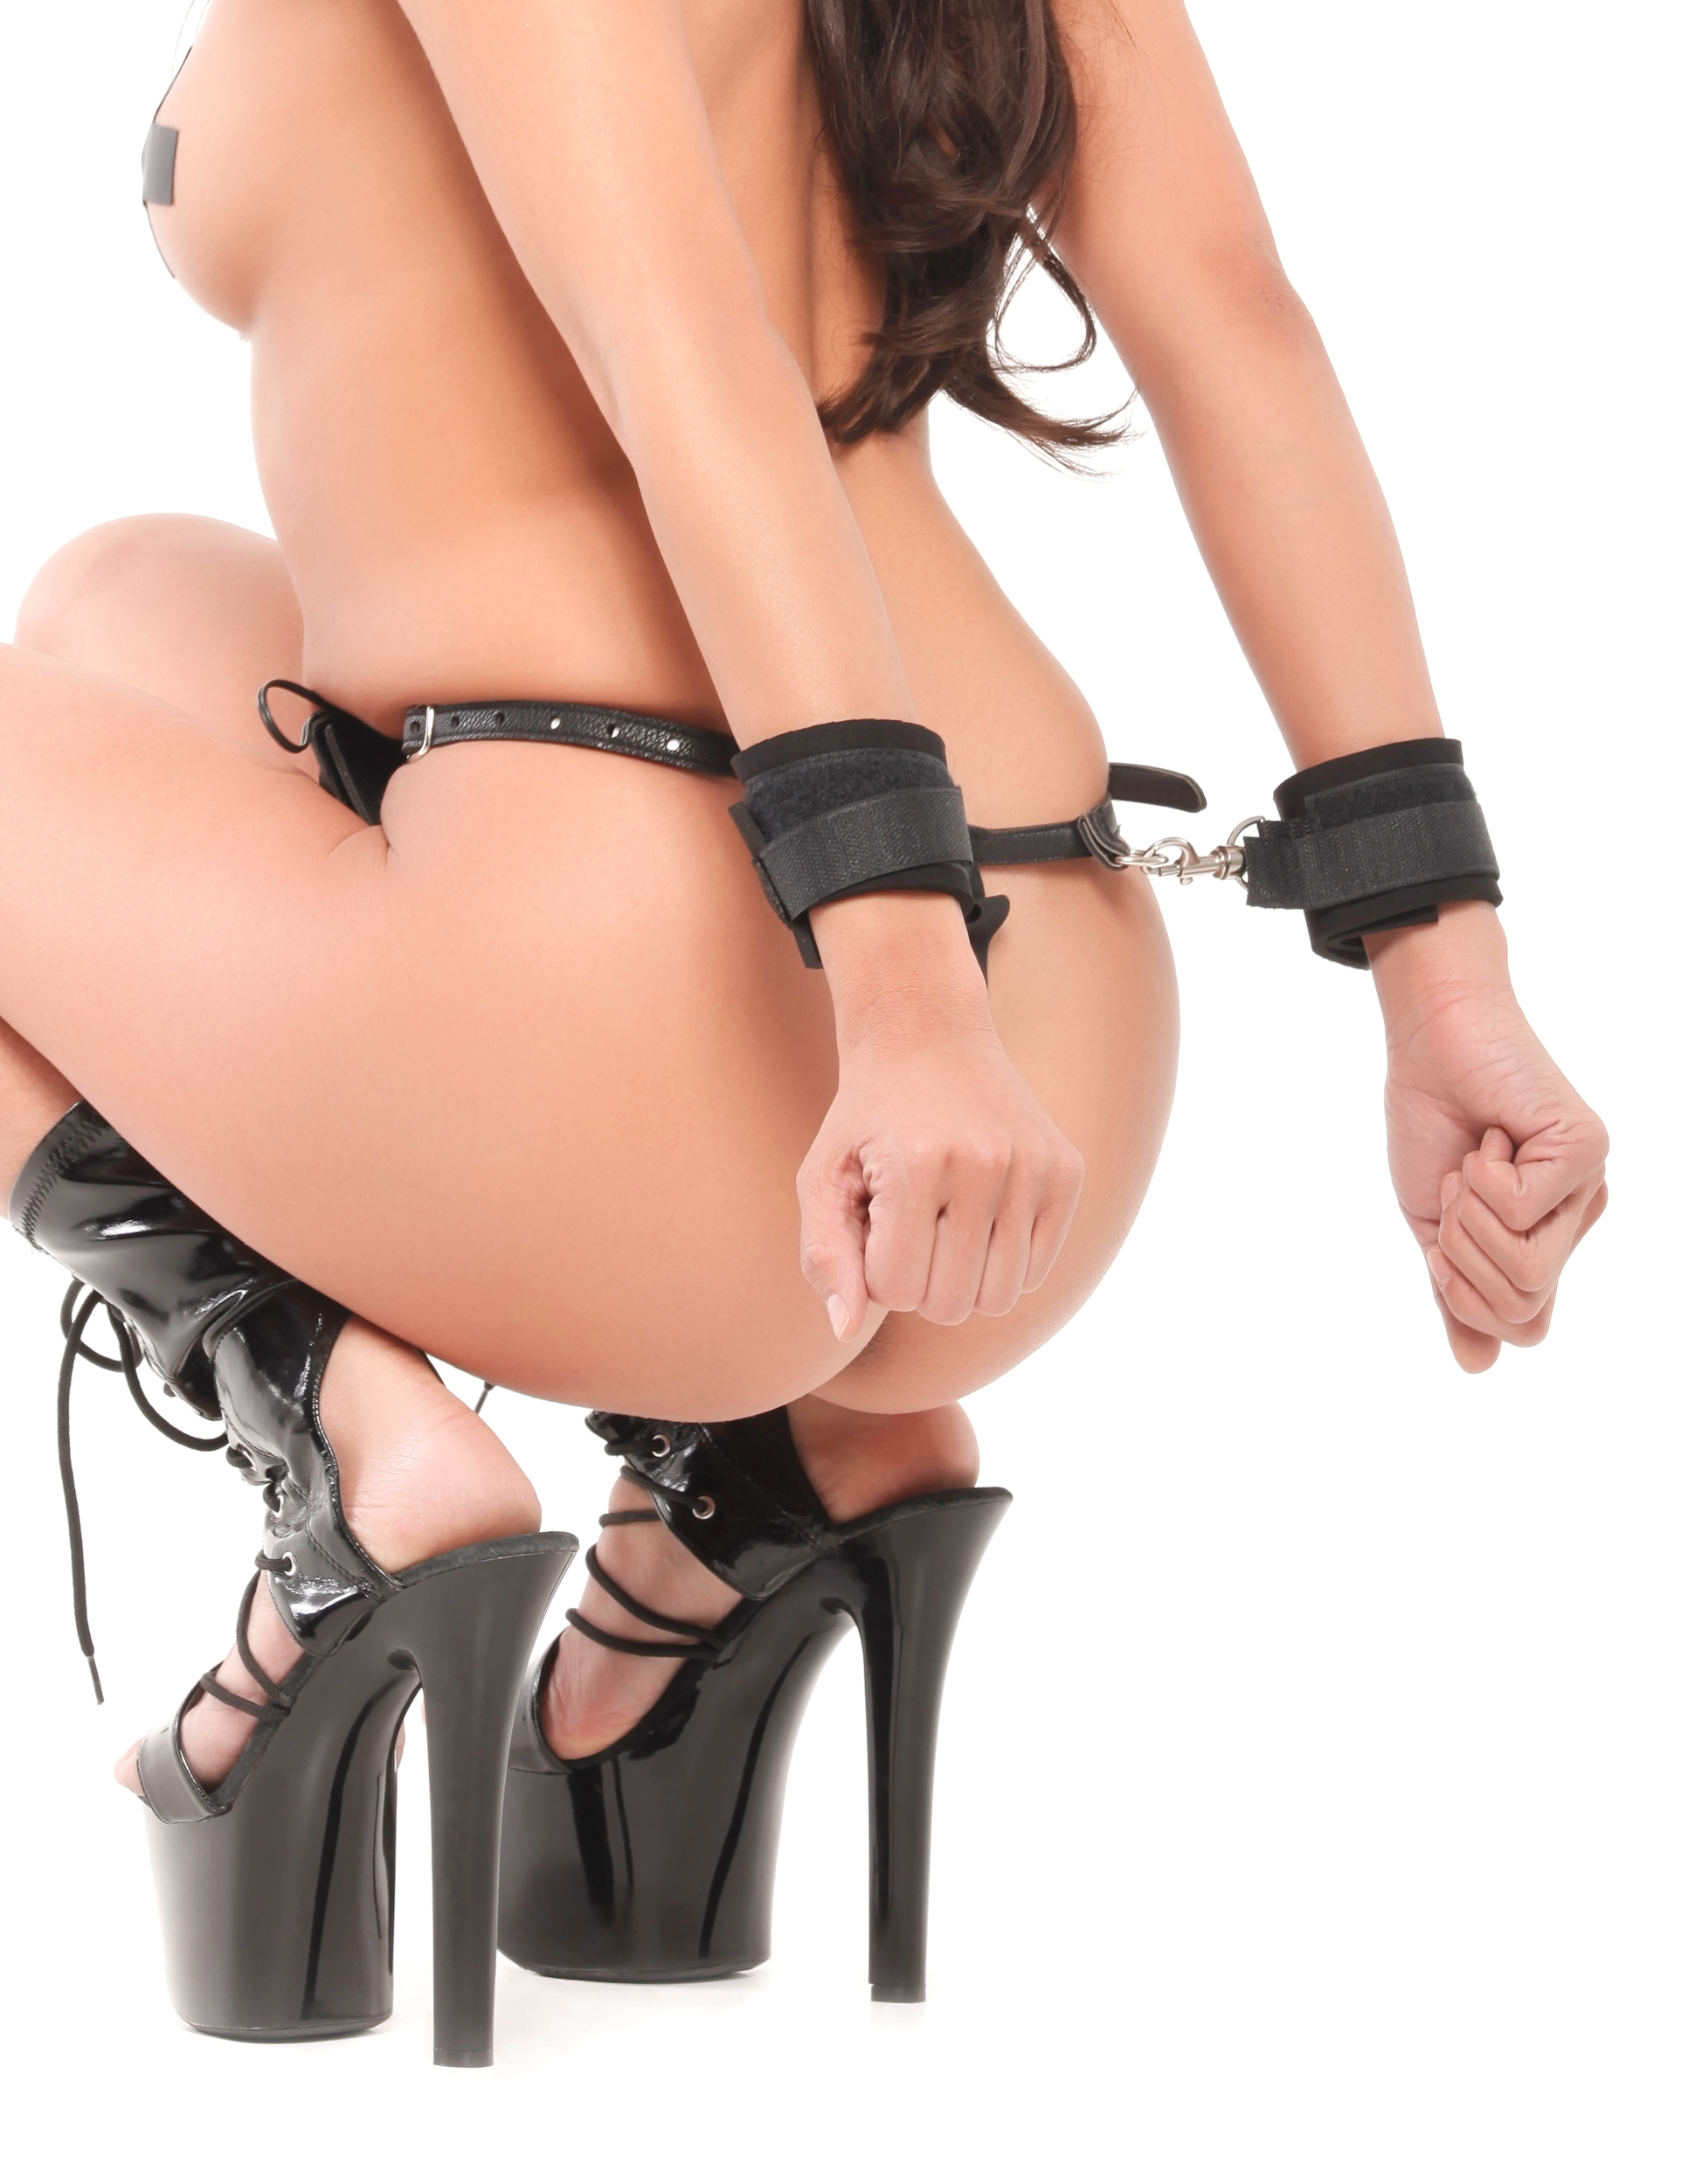 FETISH FANTASY SHOCK BONDAGE PANTY & CUFFS